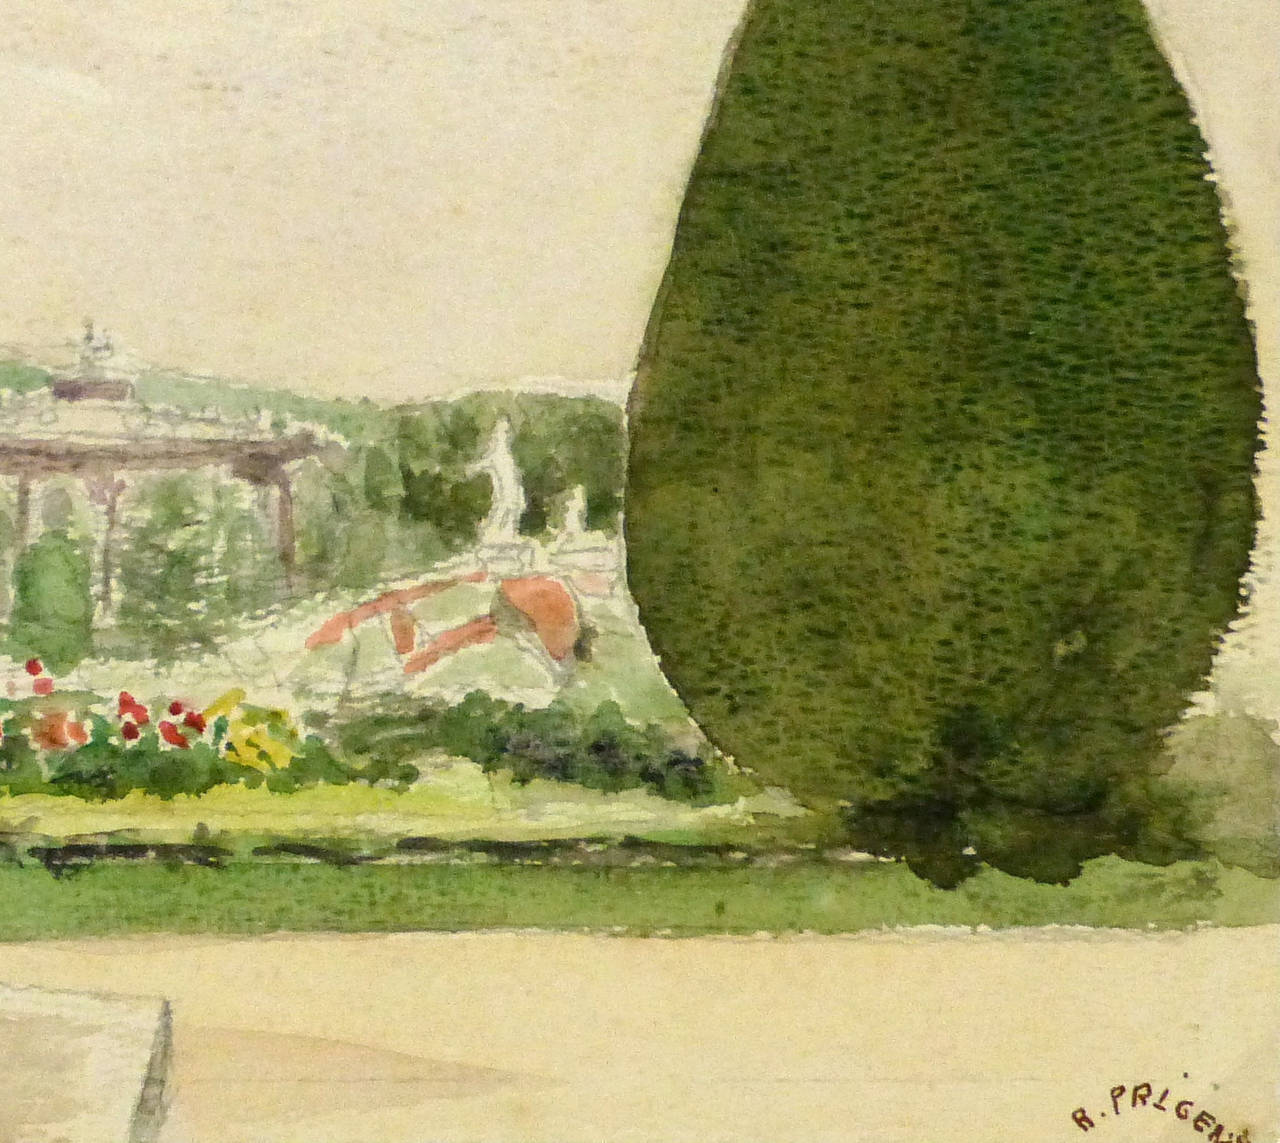 Elegant watercolor and pencil landscape of the splendid gardens of Versailles Palace in France by artist R. Prigent, 1976. Signed lower right, dated on back.